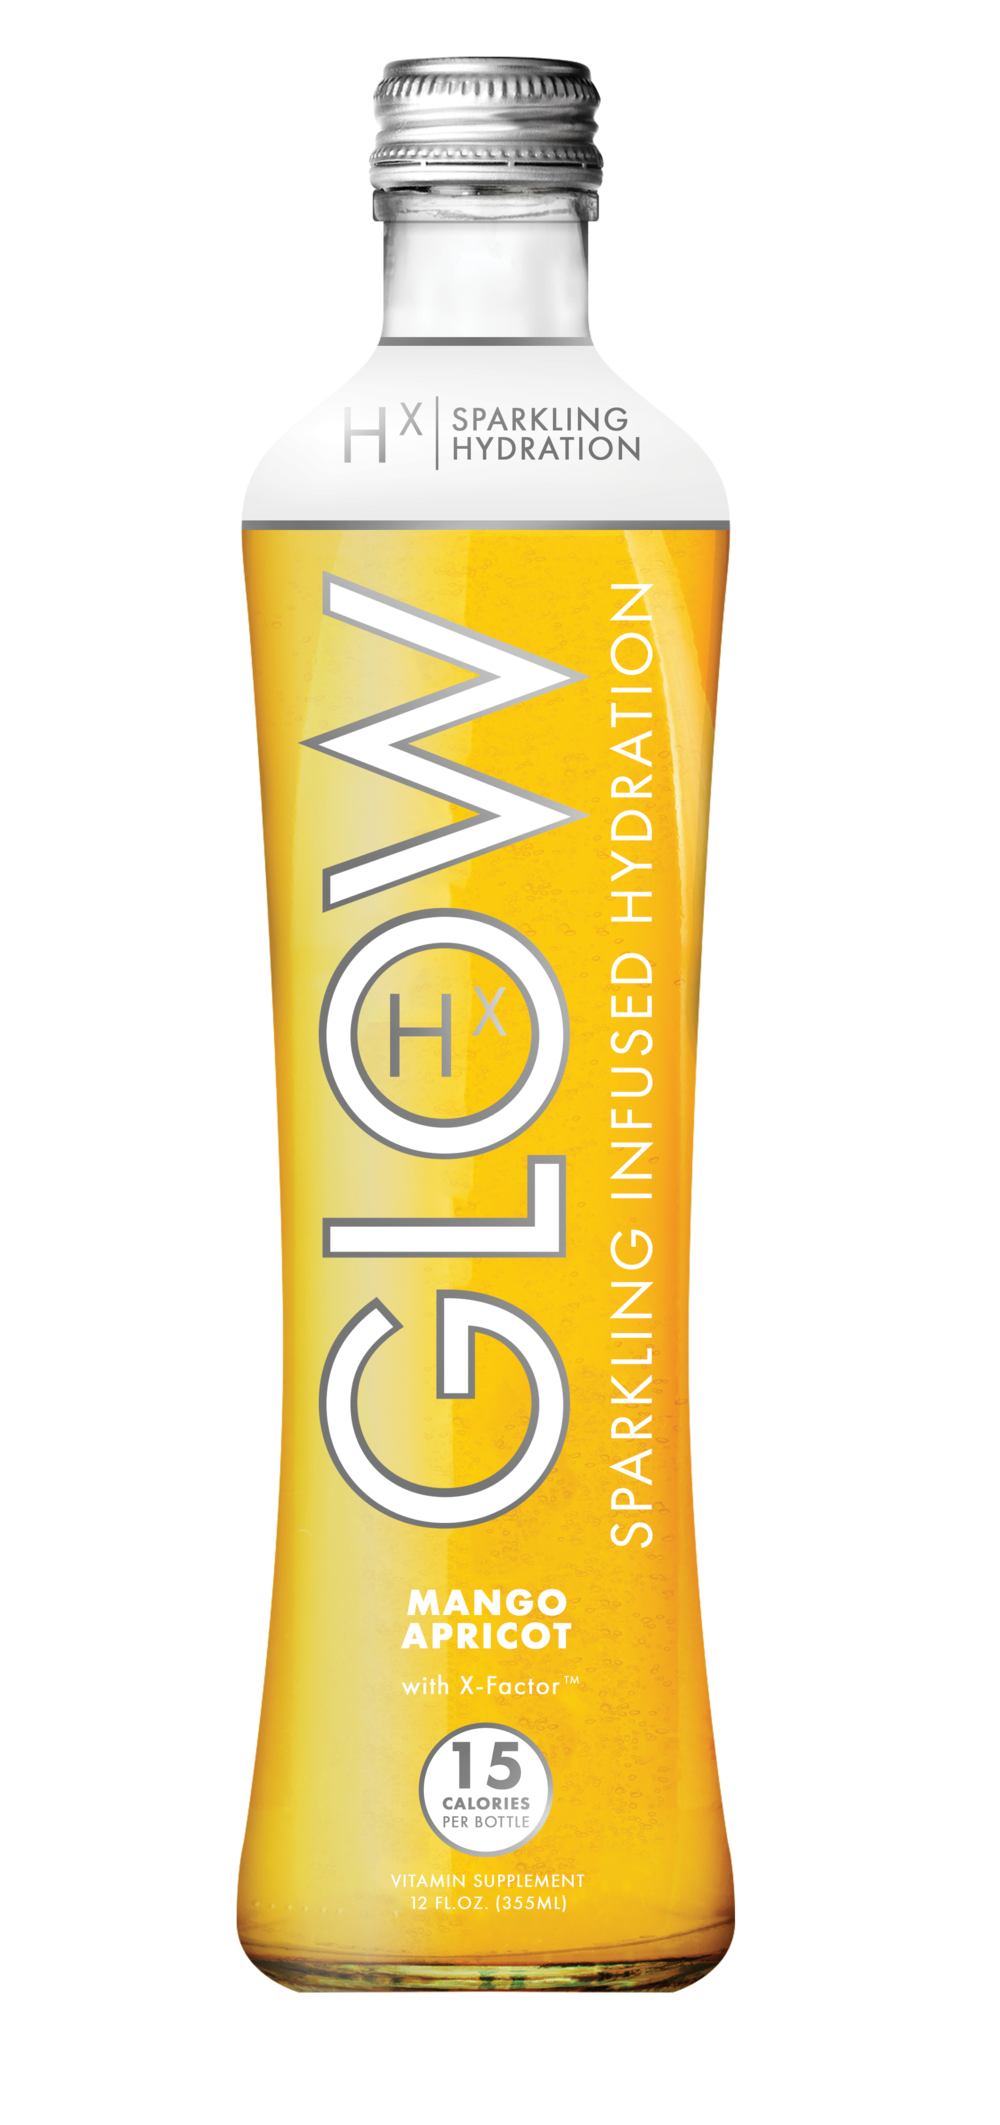 GLOW Sparkling Infused Beverages Hydration Mango Apricot Glass Single Bottle